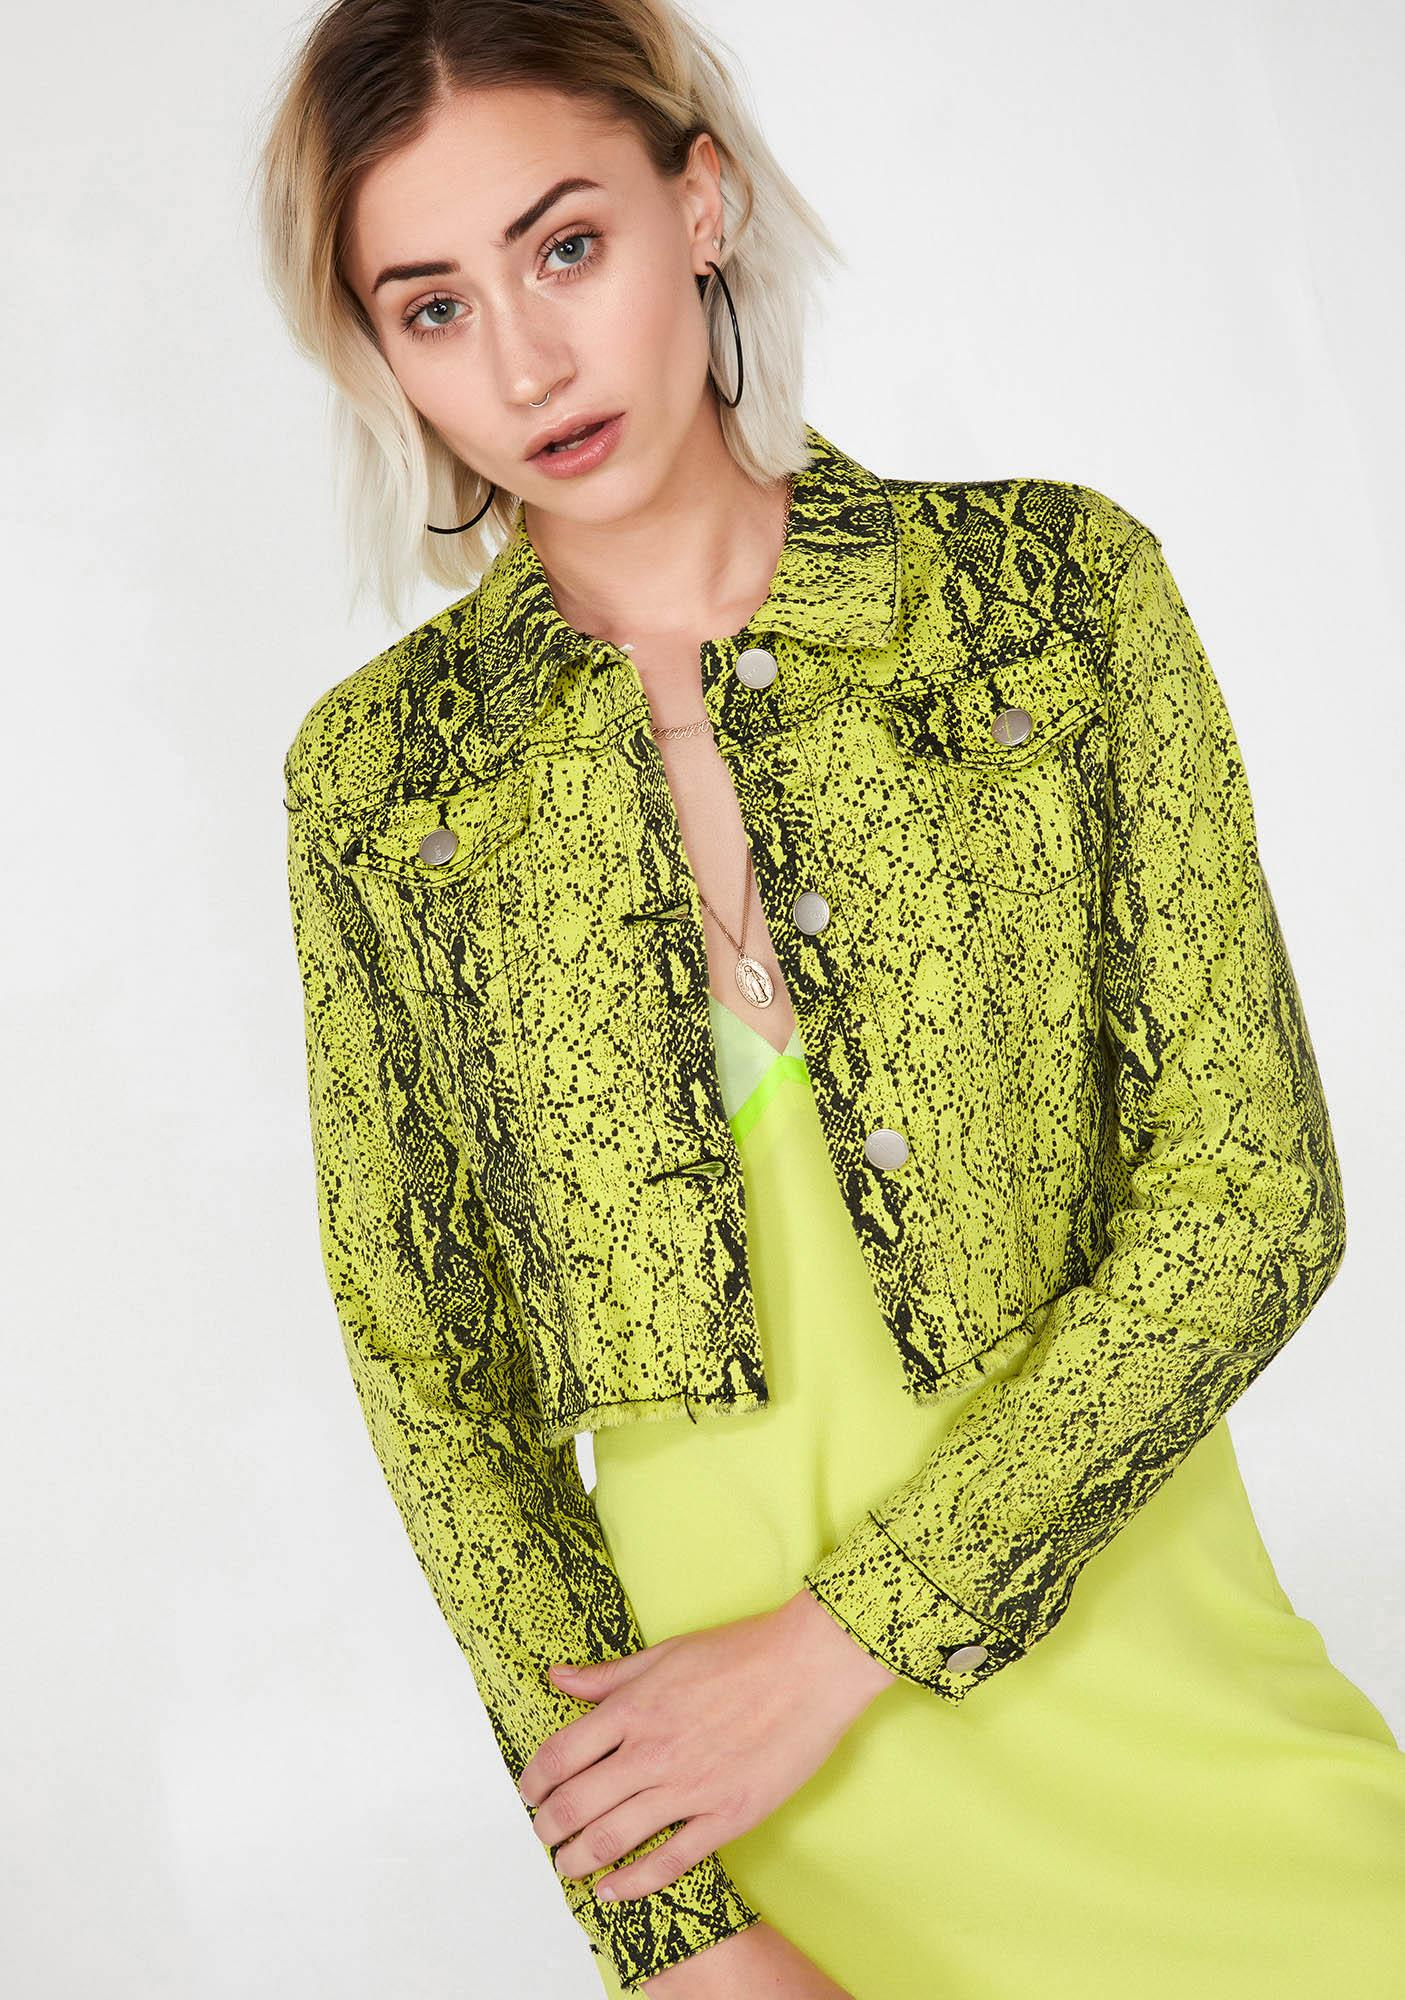 Electric Lady Danger Snakeskin Jacket